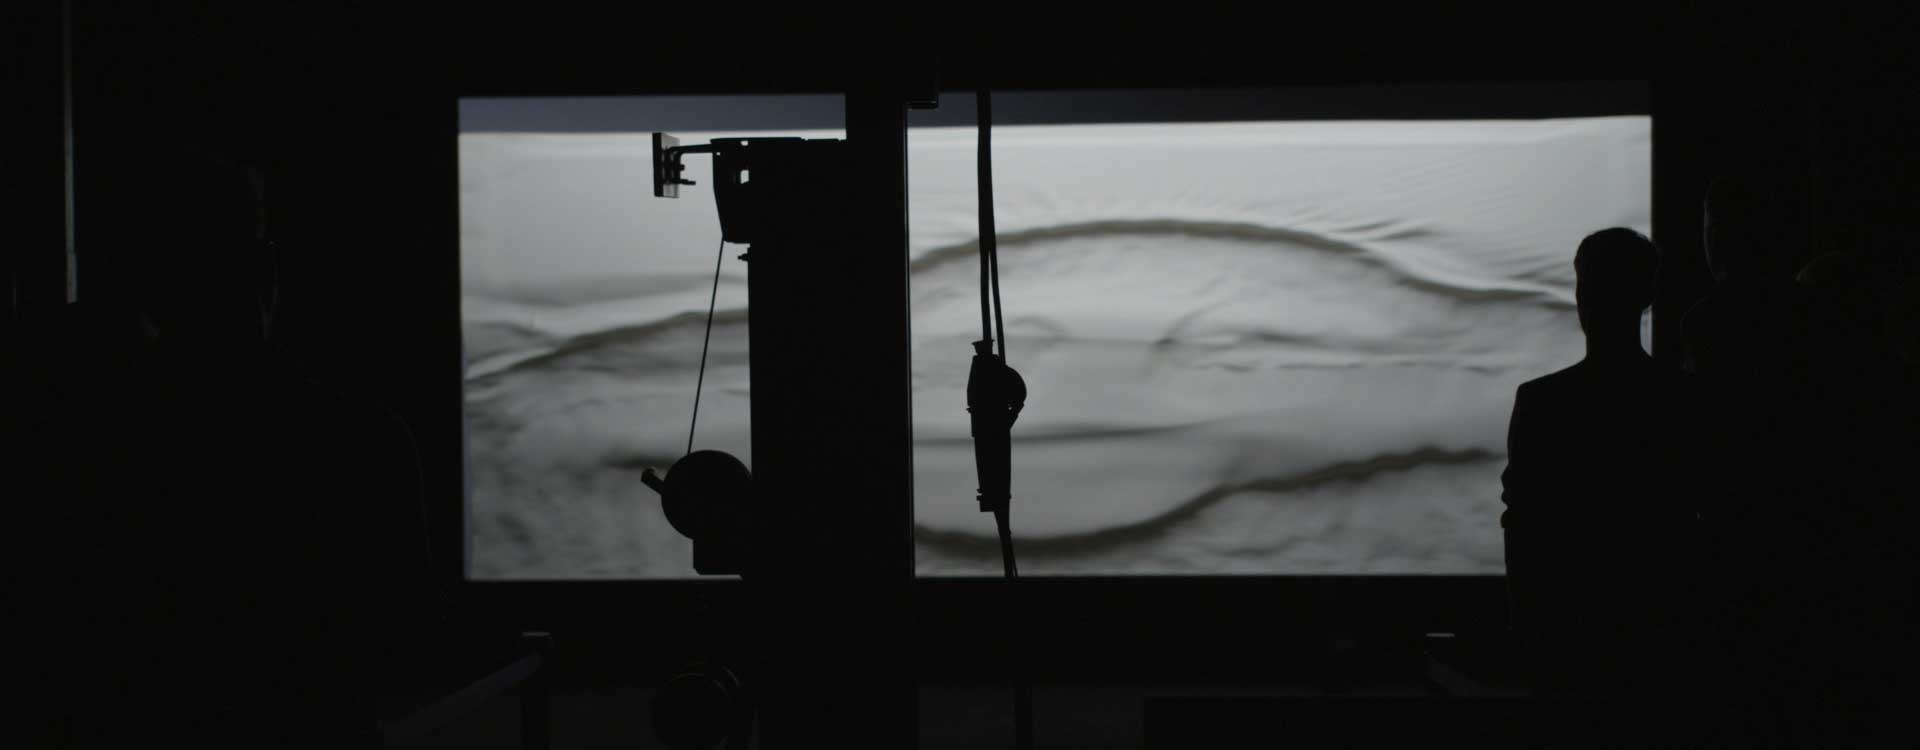 Silhouette in studio. Still from Mercedes-Benz Commercial.